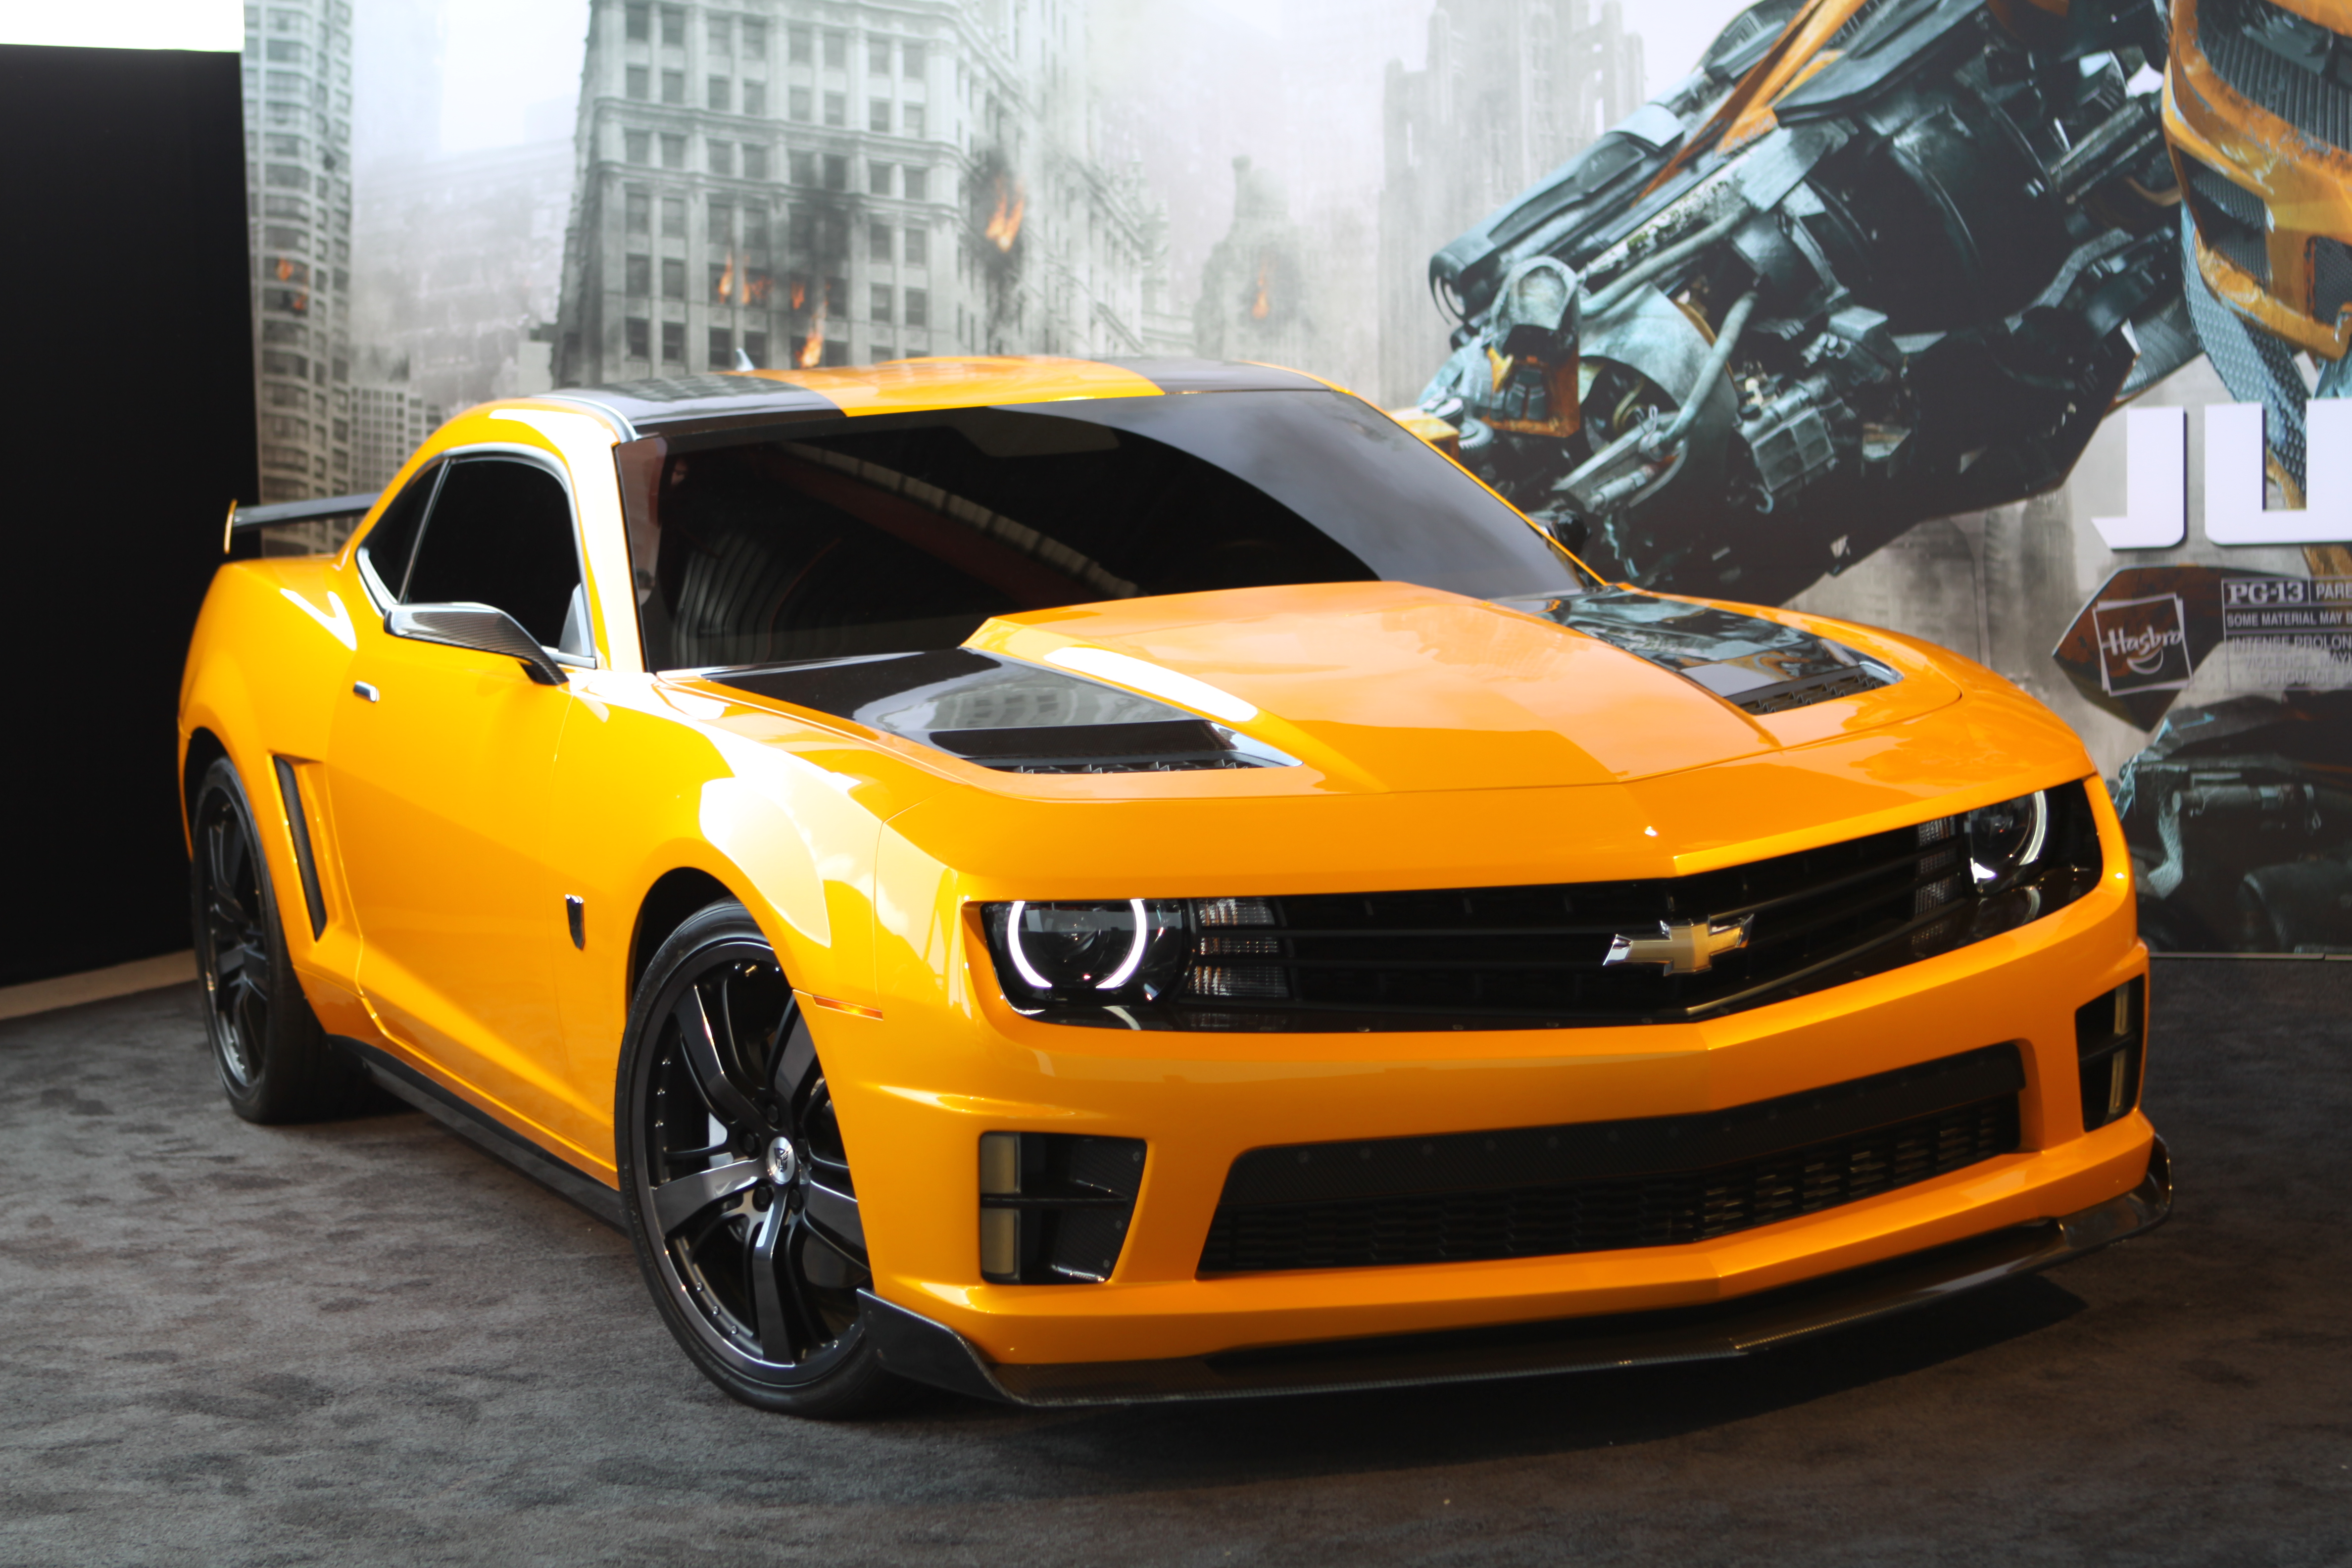 2012 transformers 3 bumblebee camaro ss wallpaper 4752x3168 168734 wallpaperup. Black Bedroom Furniture Sets. Home Design Ideas